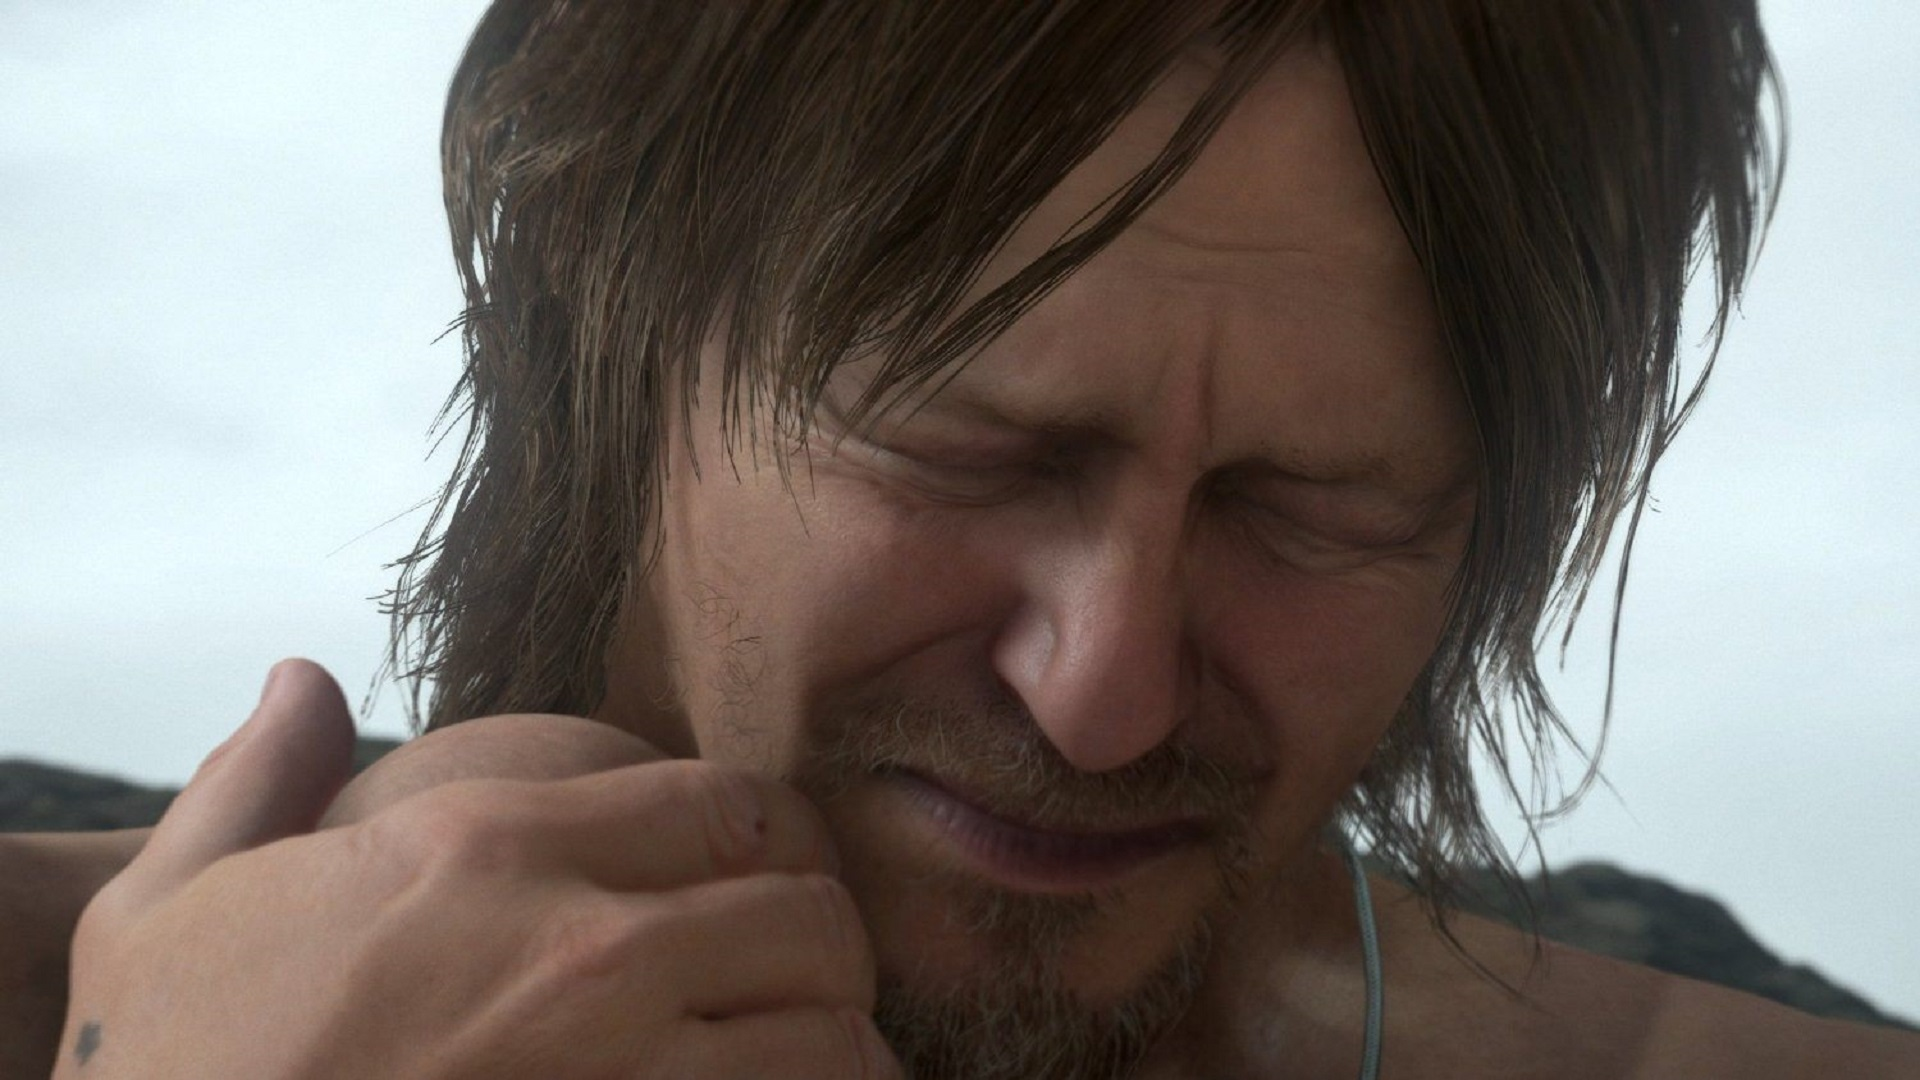 No Death Stranding @E3 2017